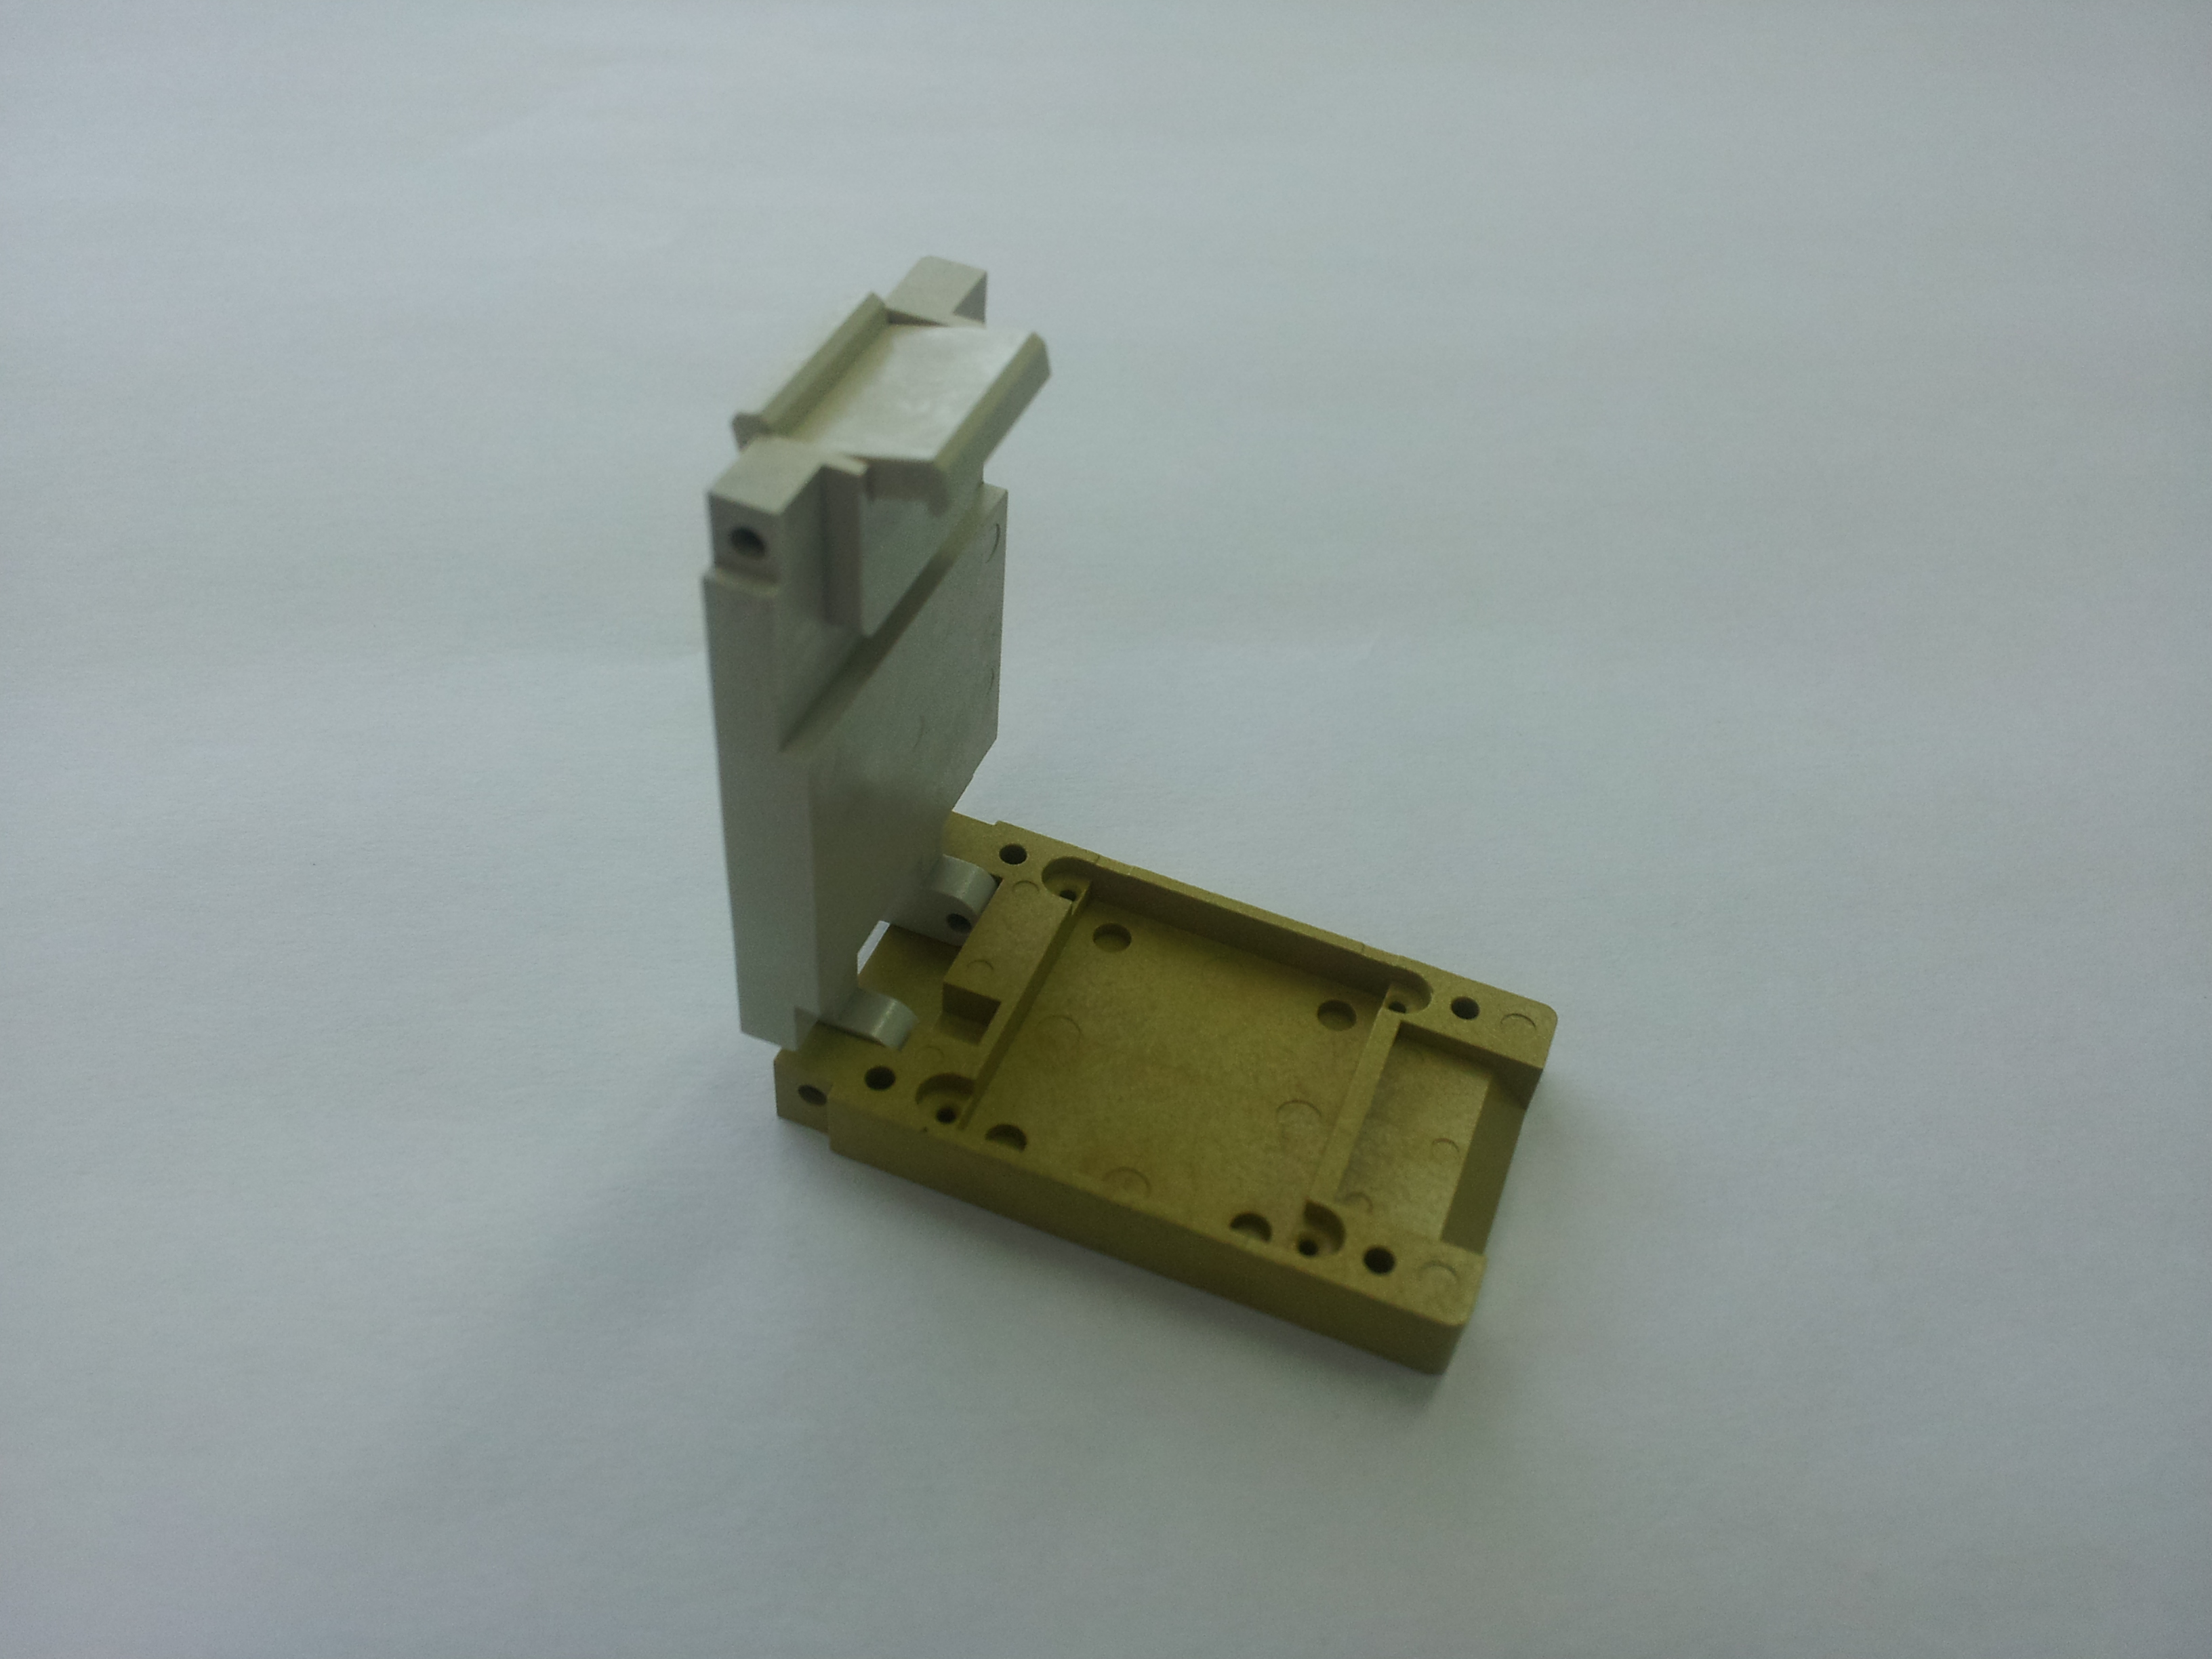 I/C Test Socket Parts